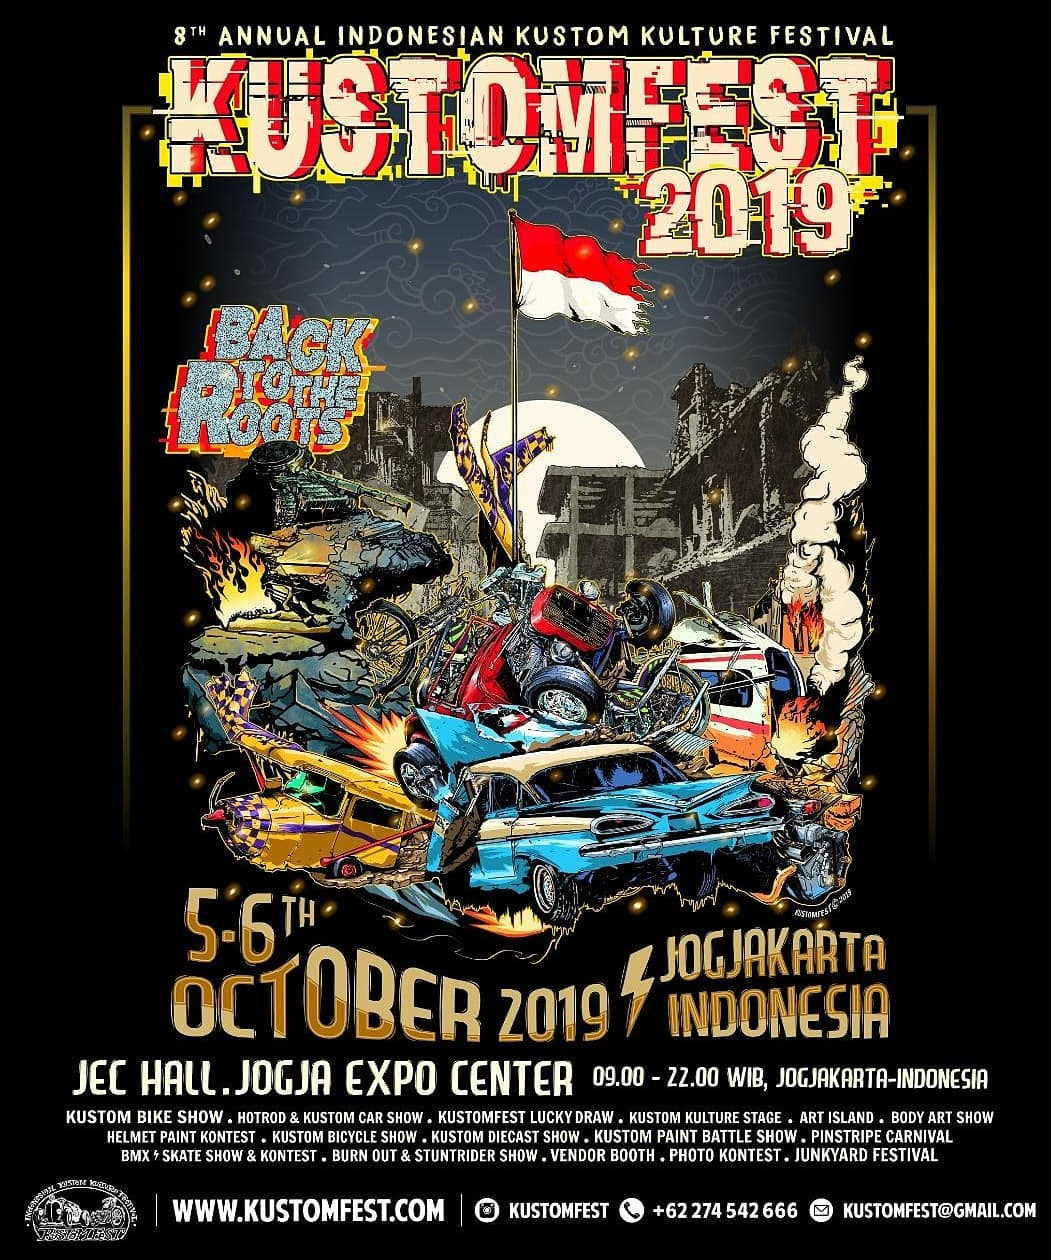 KUSTOMFEST 2019 – Back To The Roots!